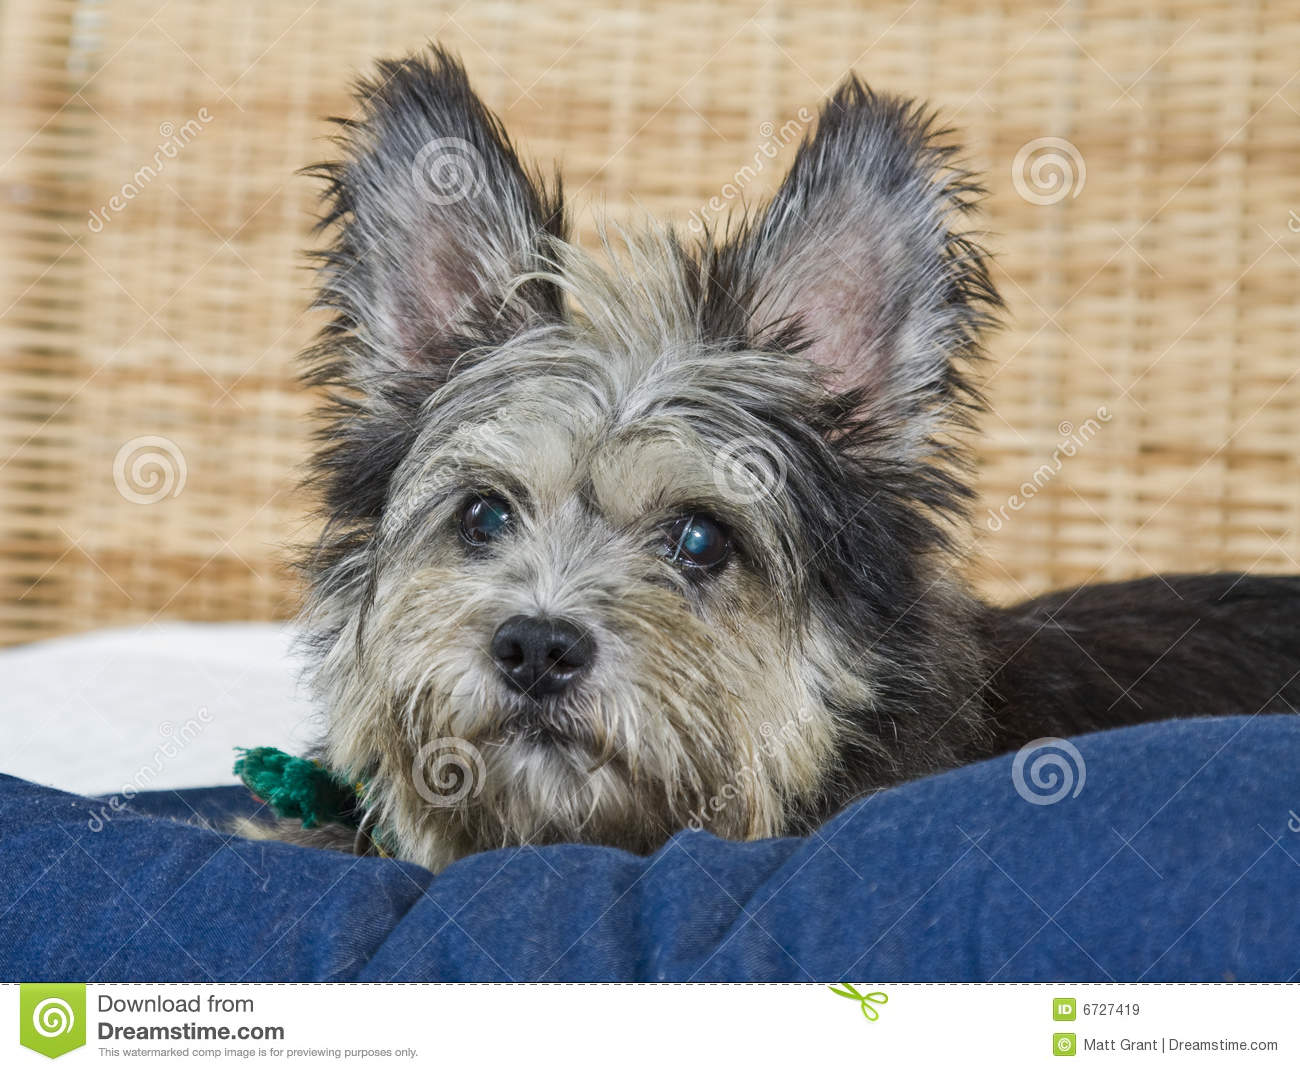 Dog Breeds And